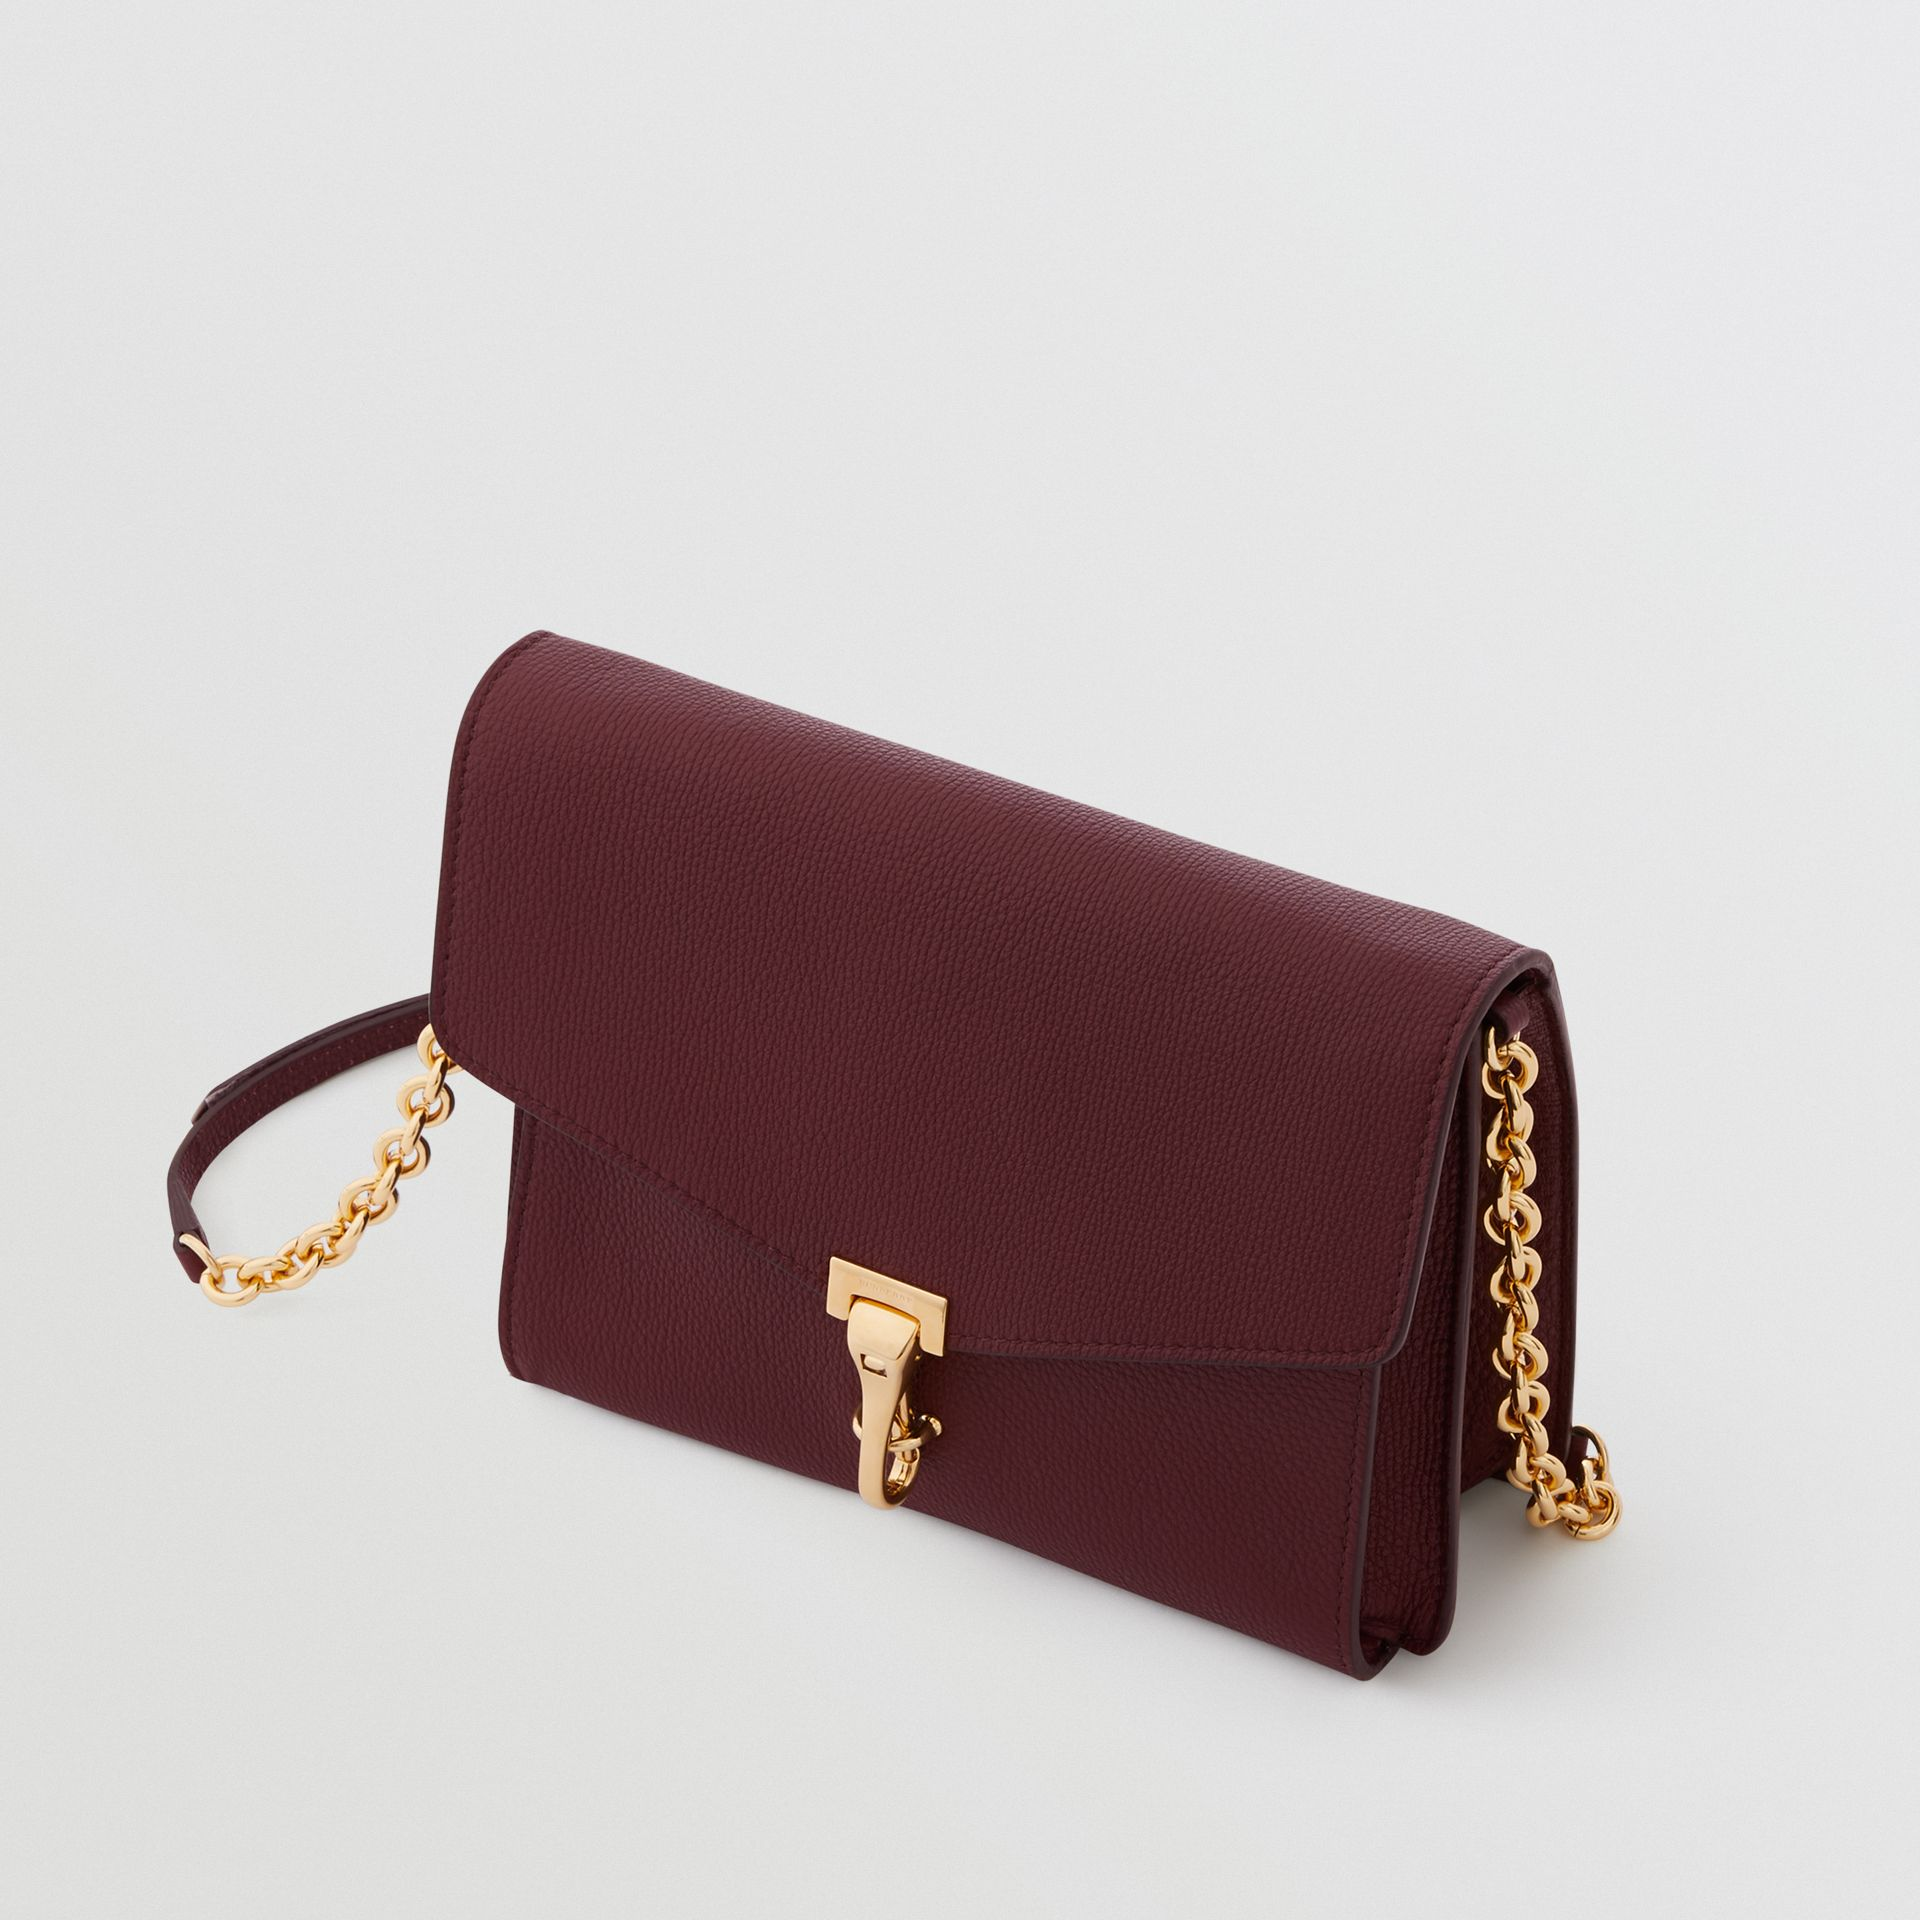 Small Leather Crossbody Bag in Mahogany Red - Women | Burberry Australia - gallery image 4